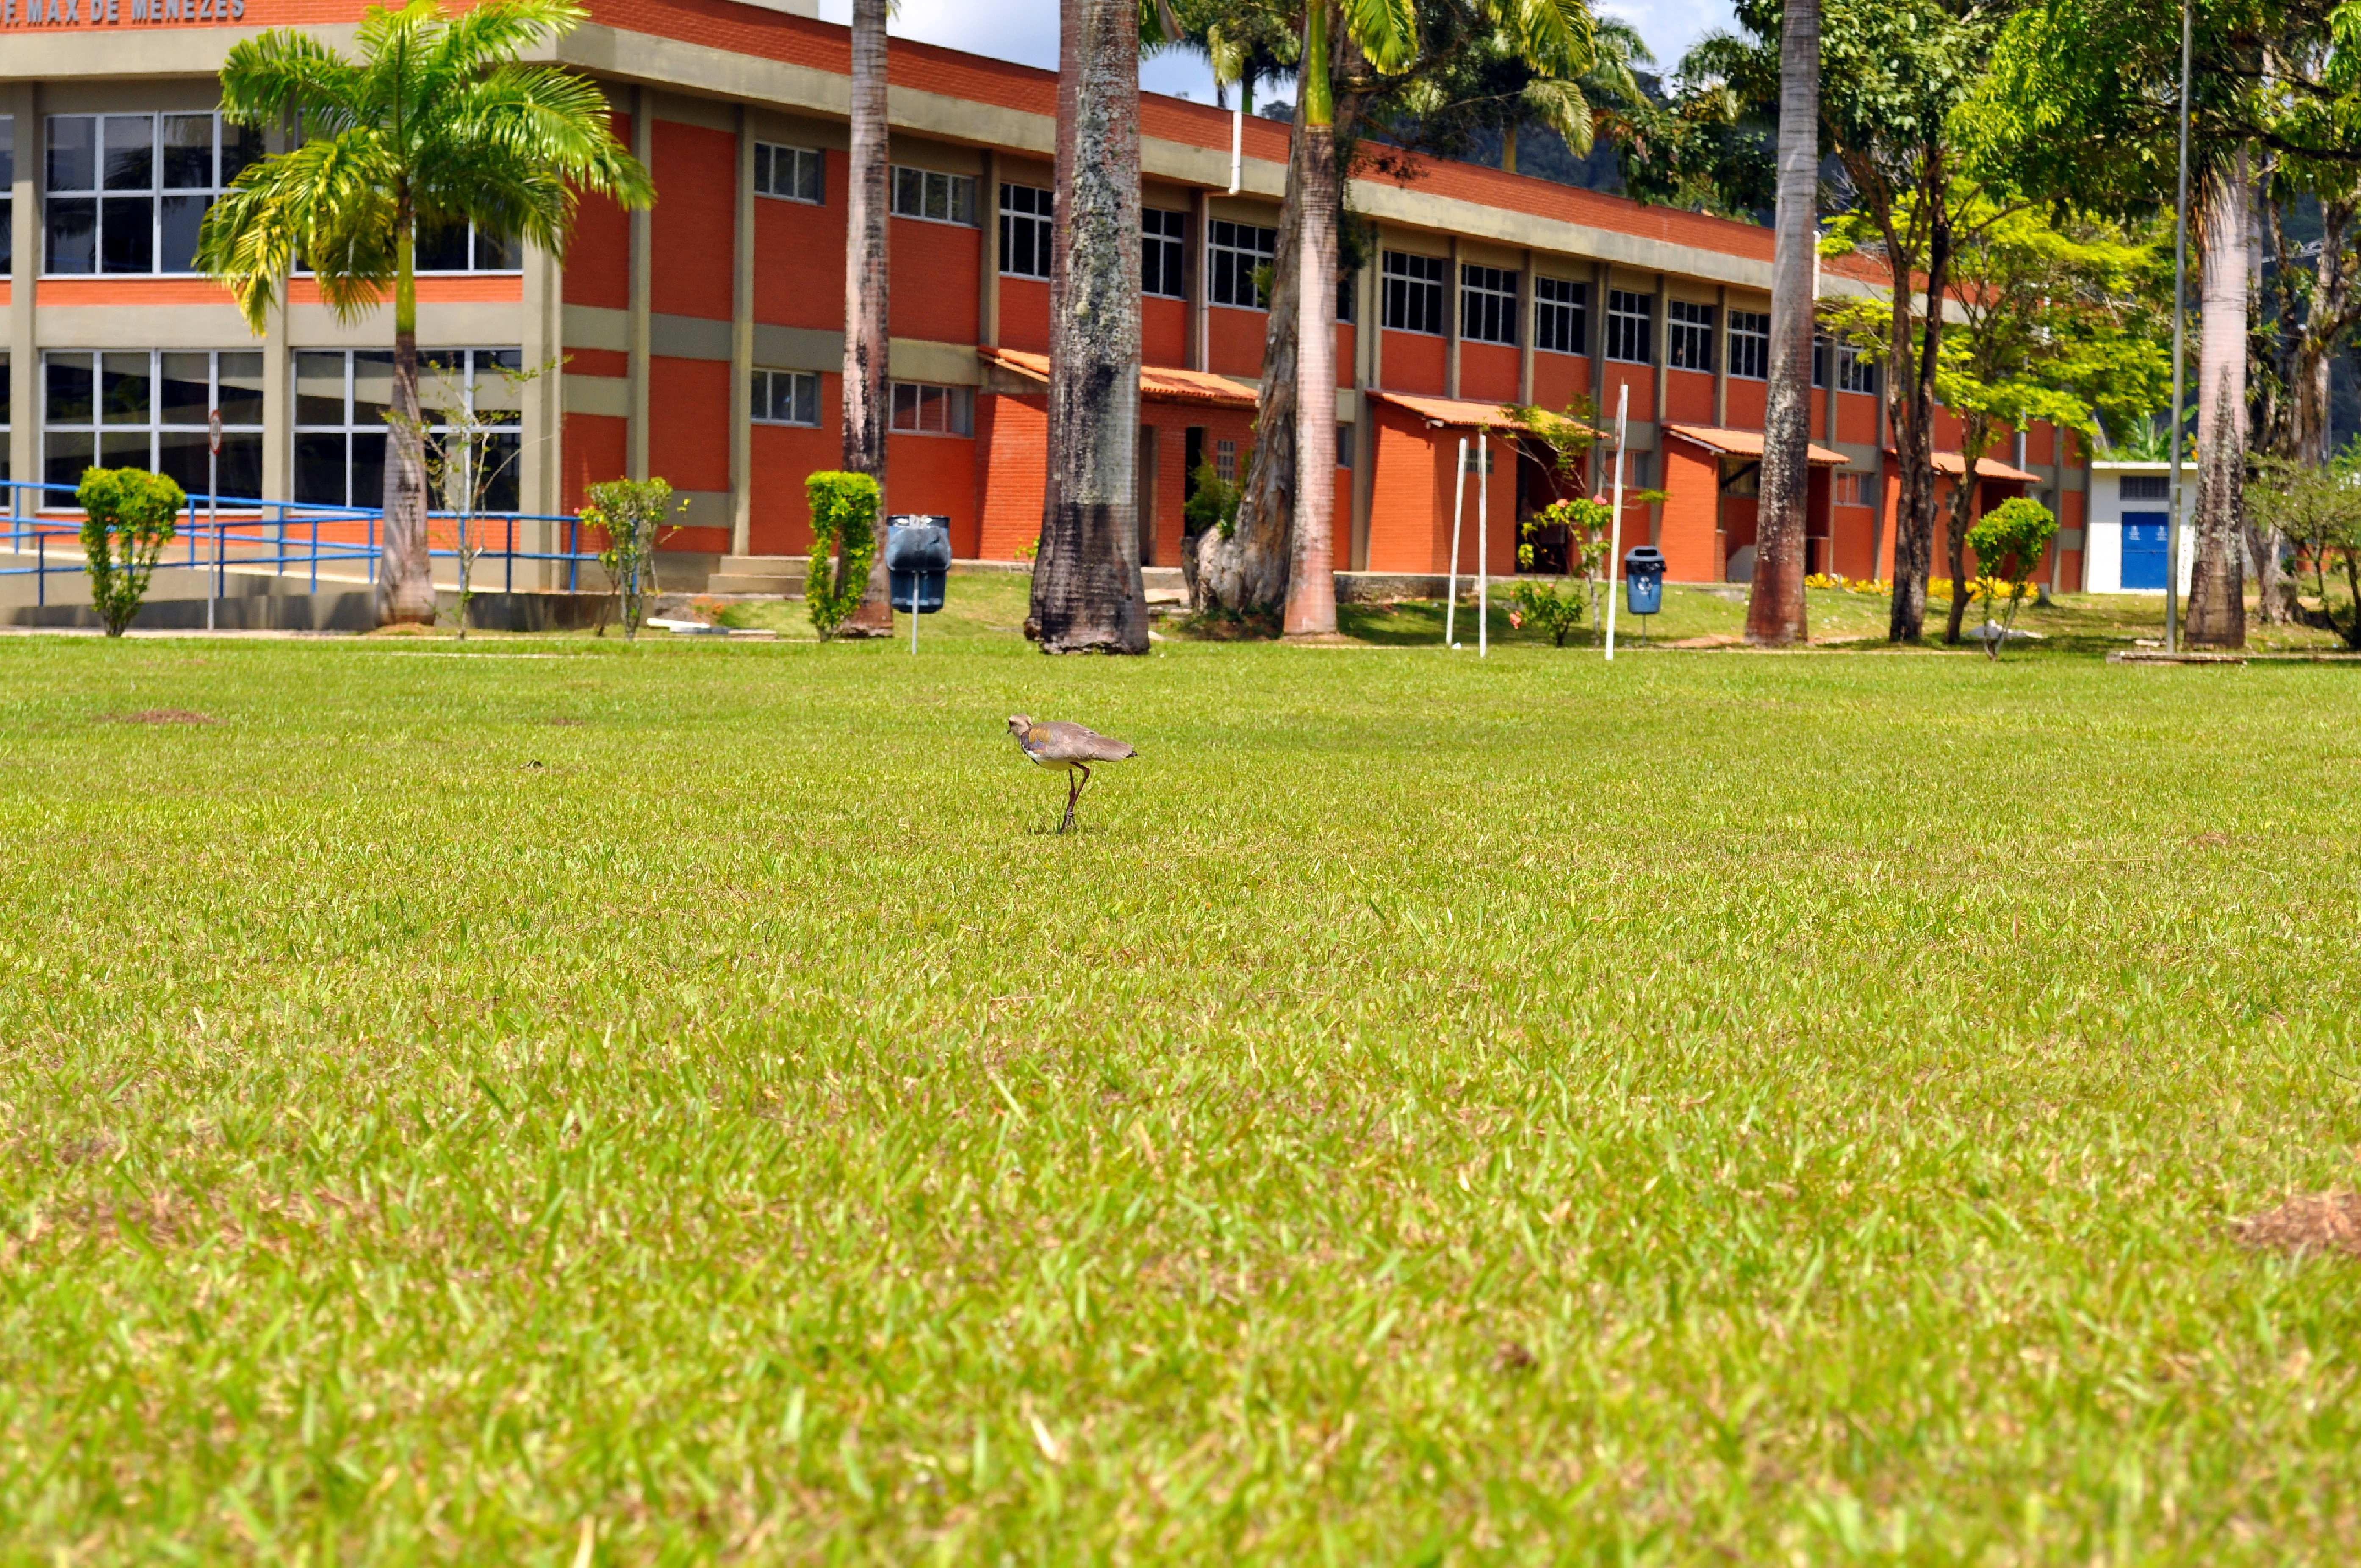 Free photograph; birds, hopping, lawn, front, building